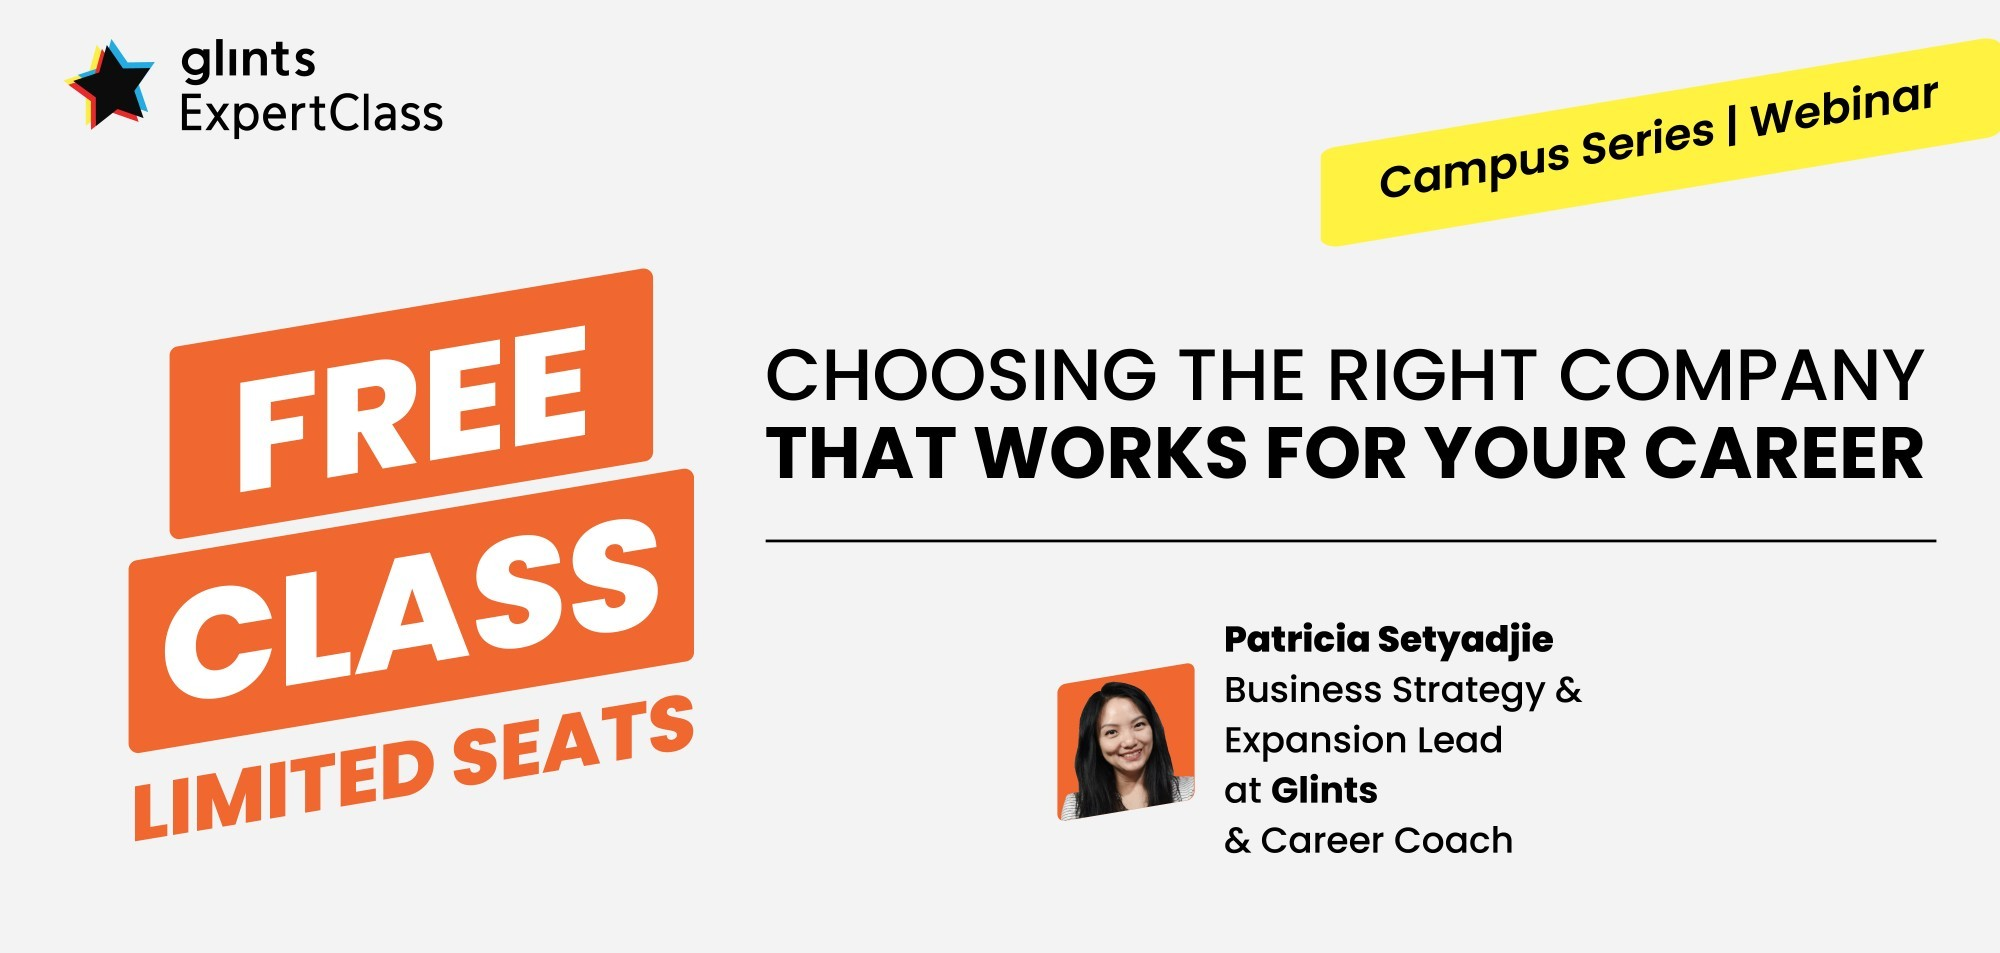 [Online Glints ExpertClass] Choosing the Right Company that Works for Your Career